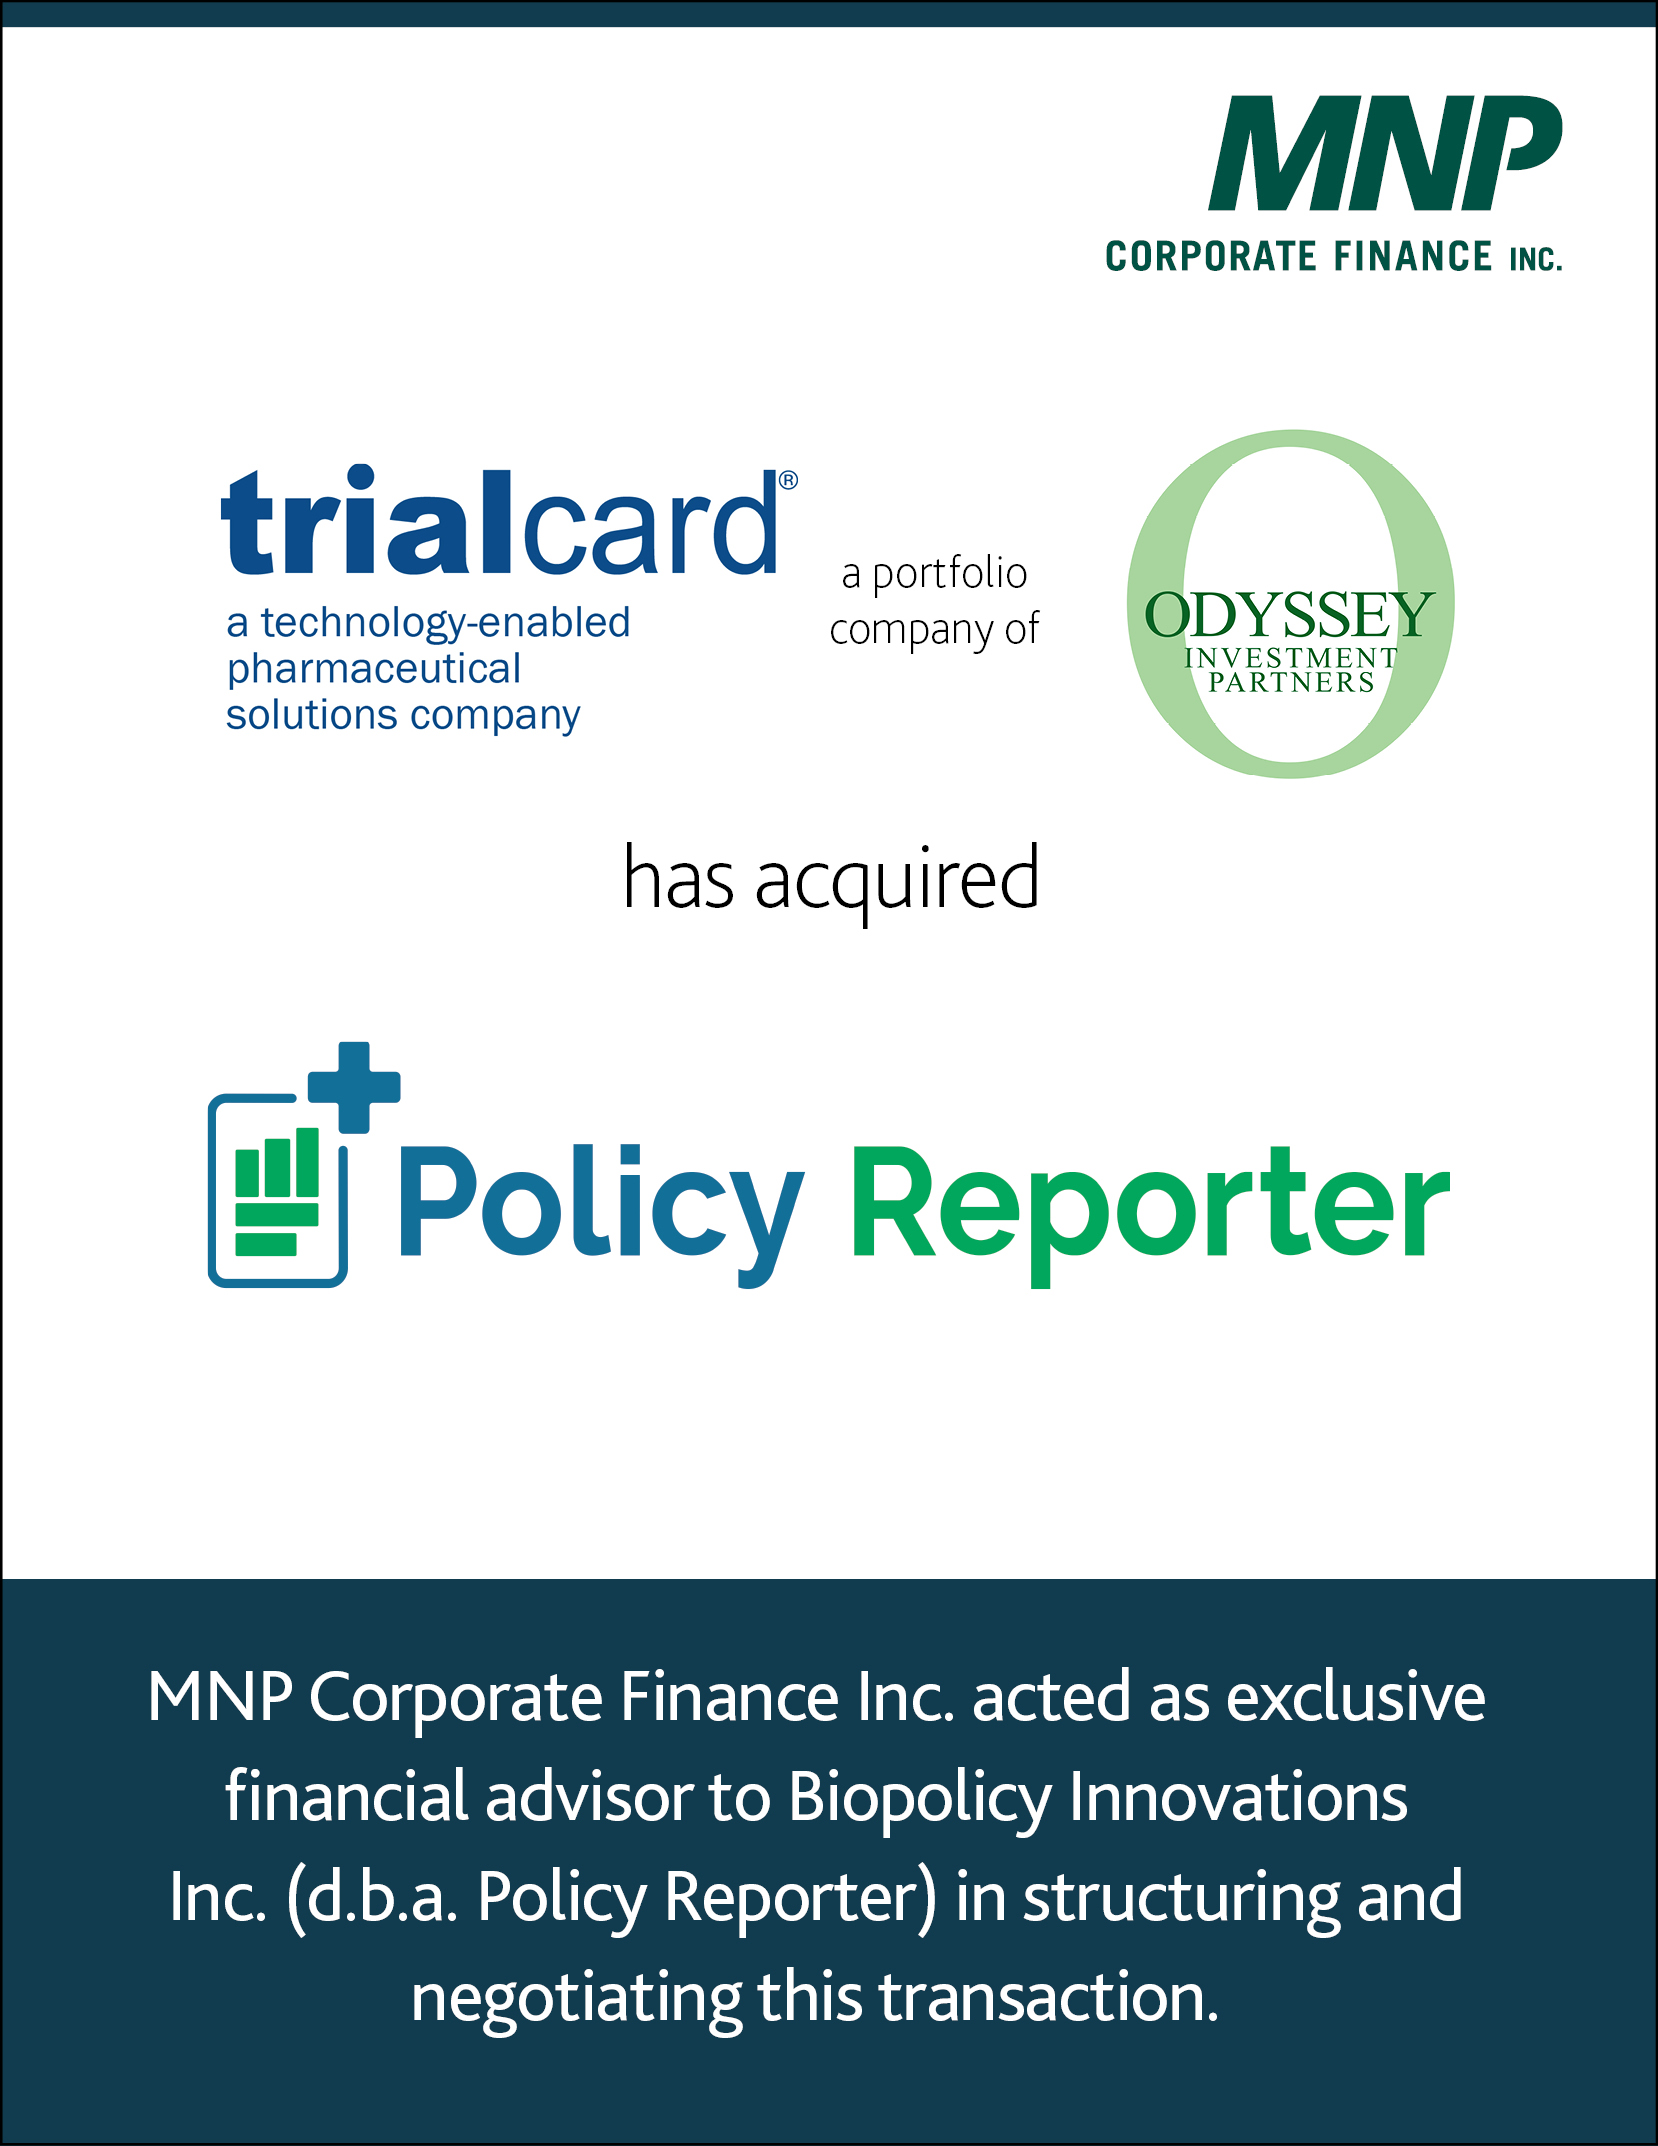 TrialCard Inc. a portfolio company of Odyssey Investment Partners LLC has acquired Biopolicy Innovations Inc.